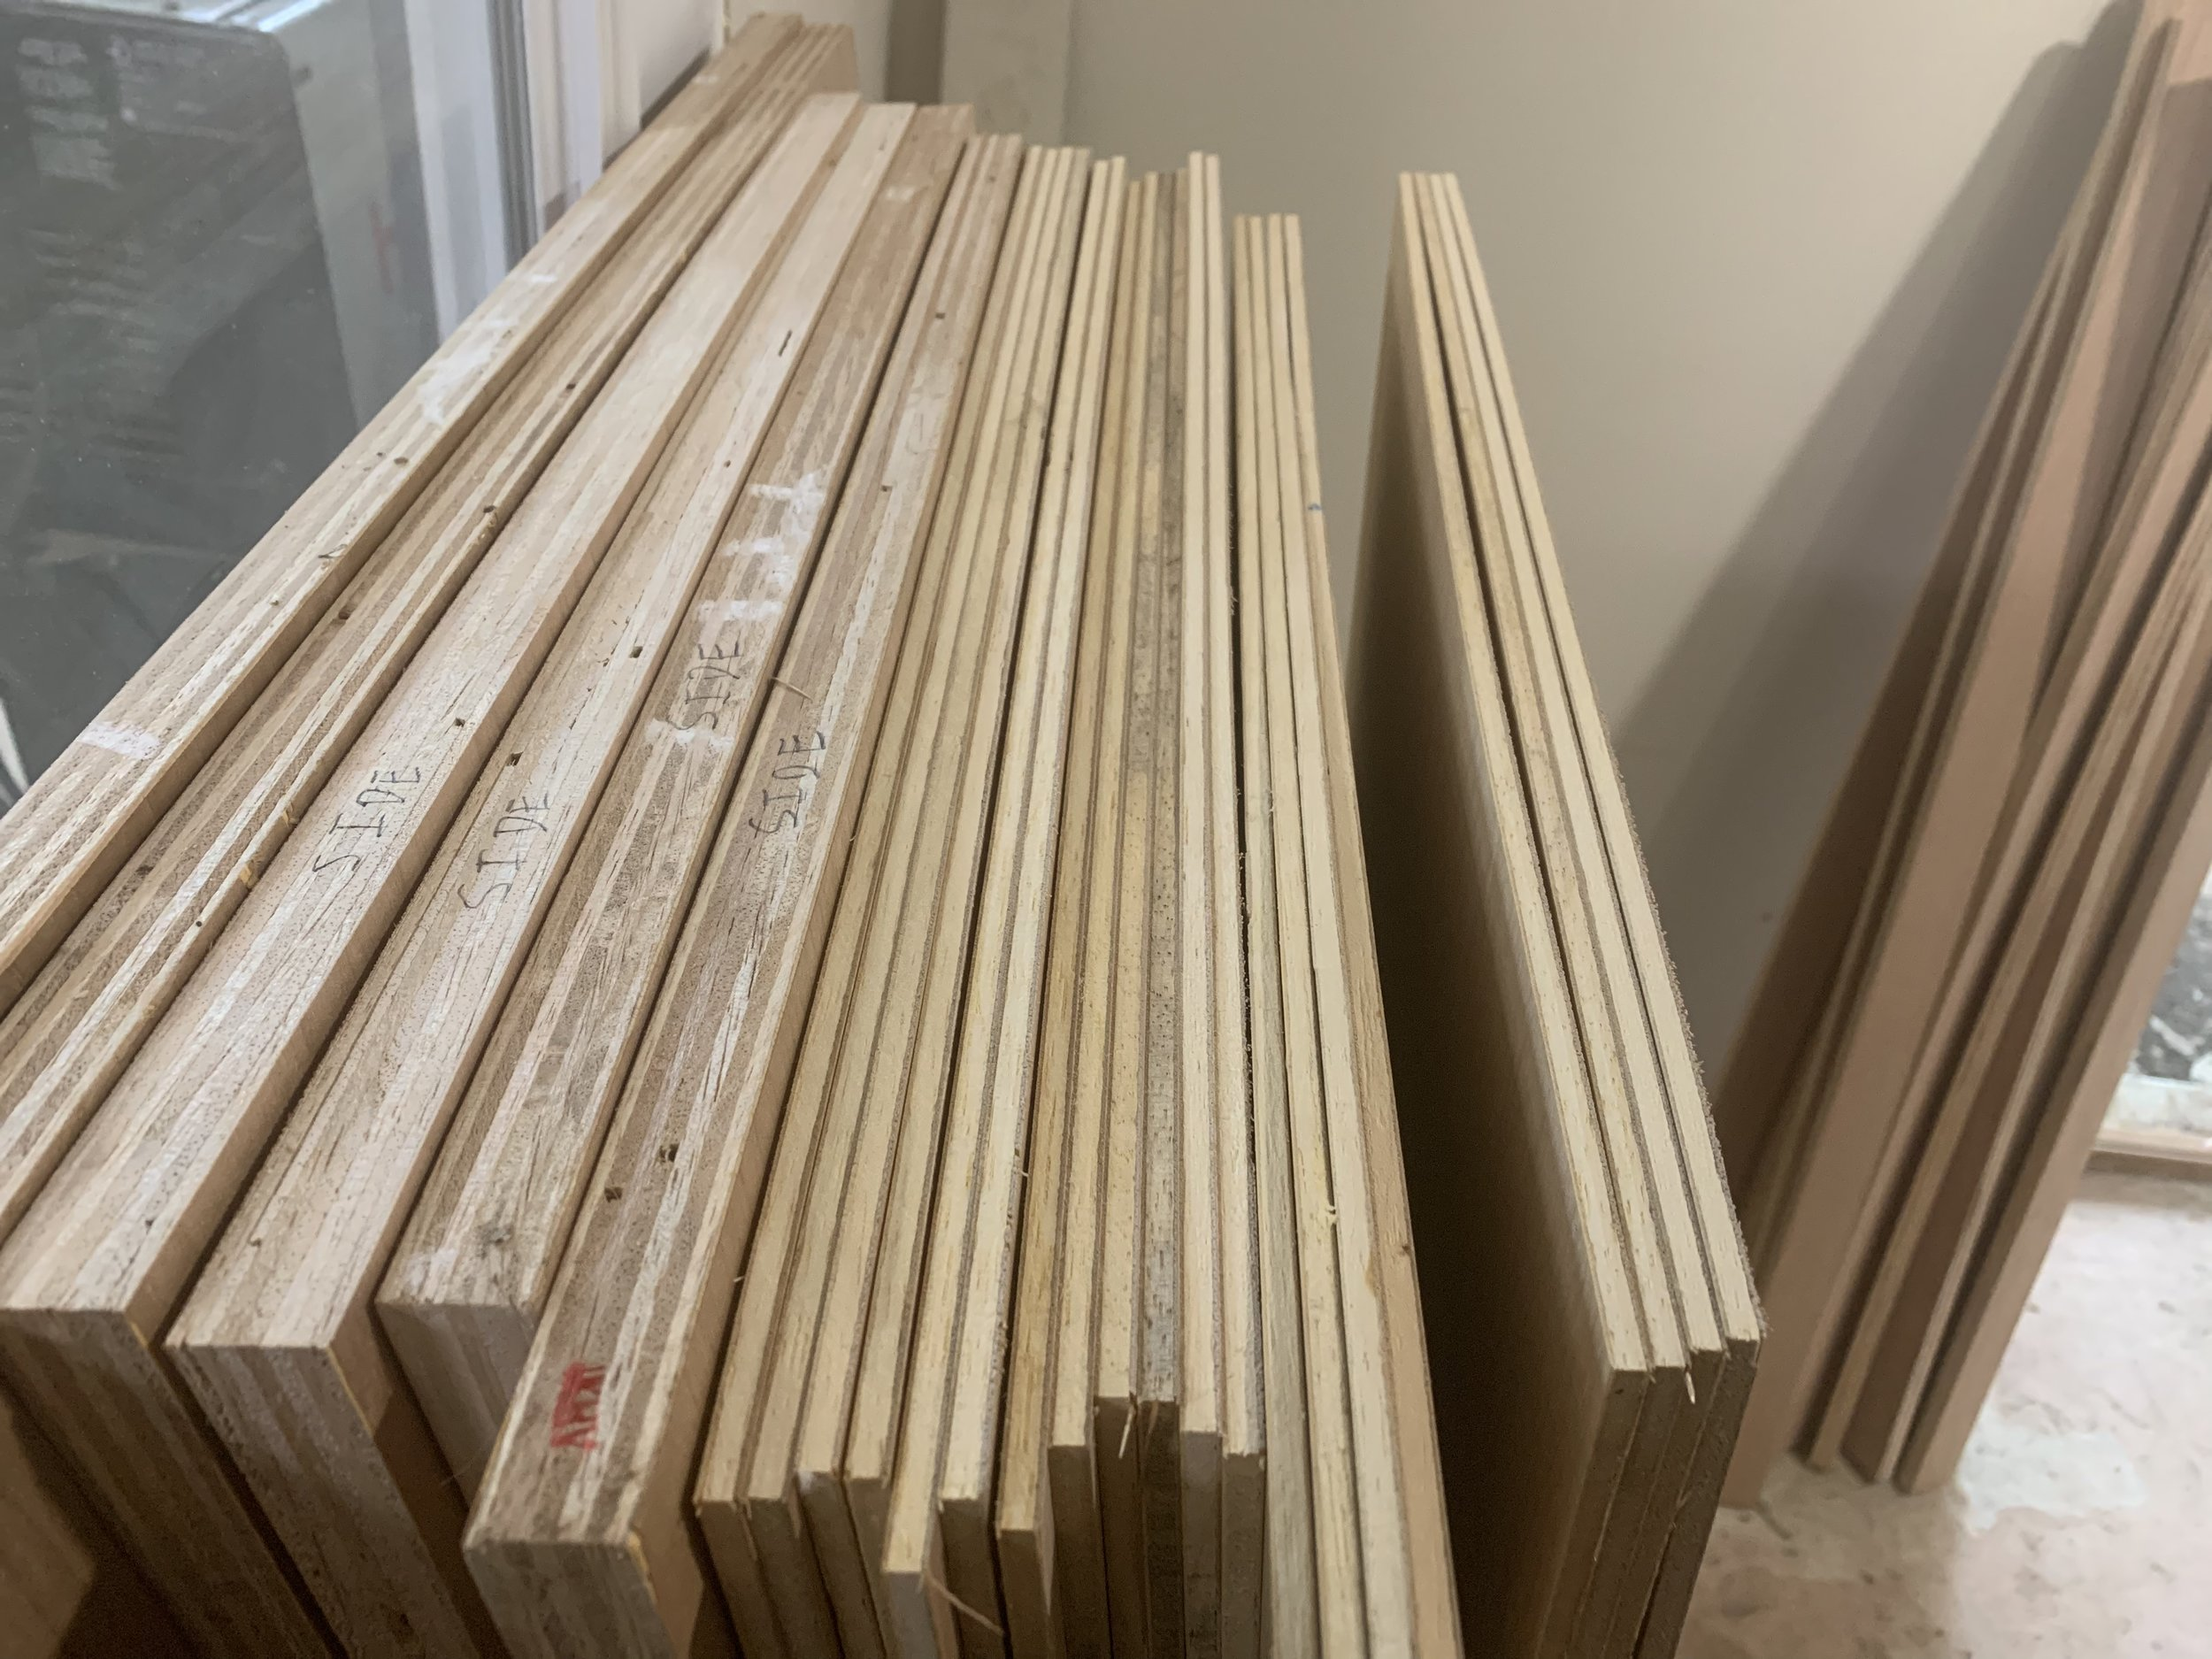 Here is the result of the custom jig: All of the wood is cut exactly to the correct lengths.